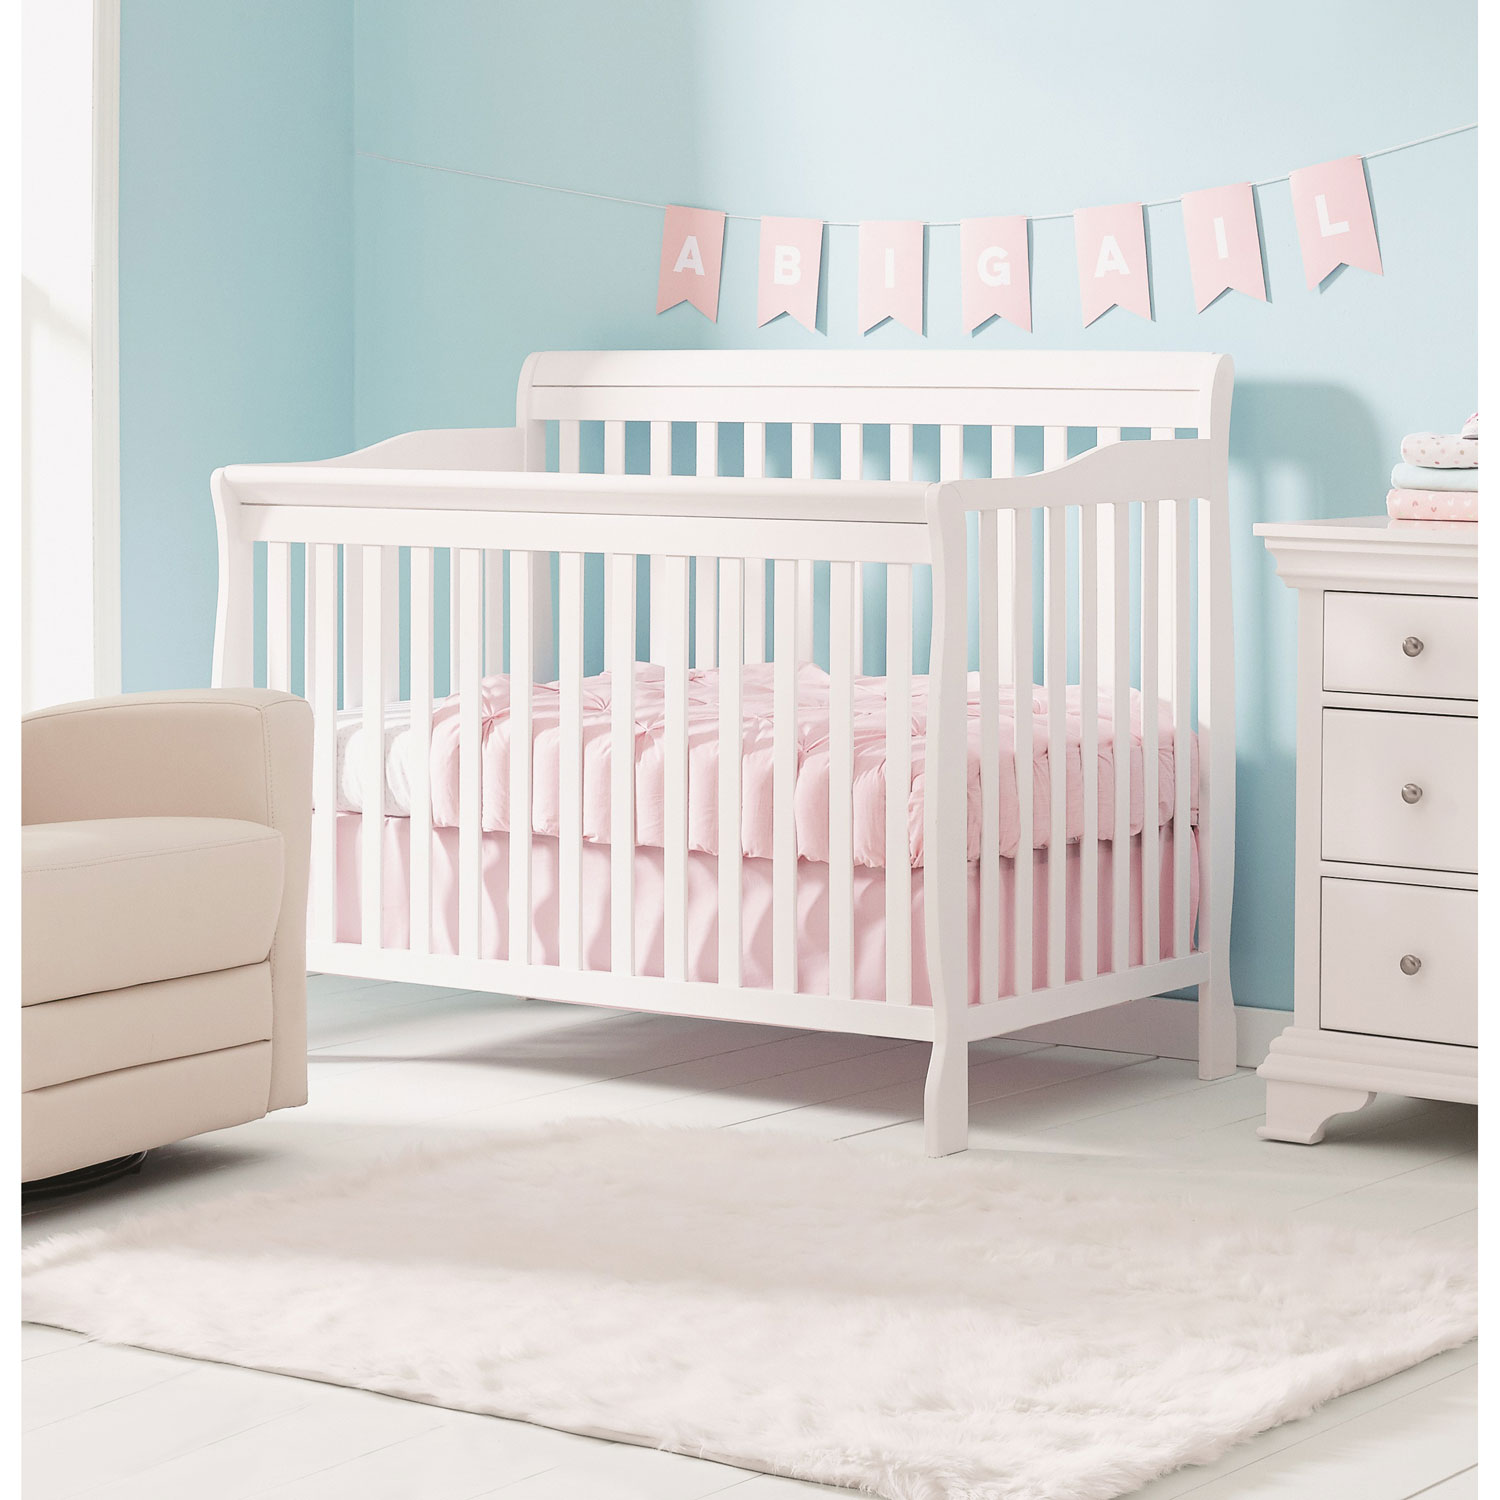 Concord Baby Dover 4 In 1 Convertible Crib White Best Buy Canada